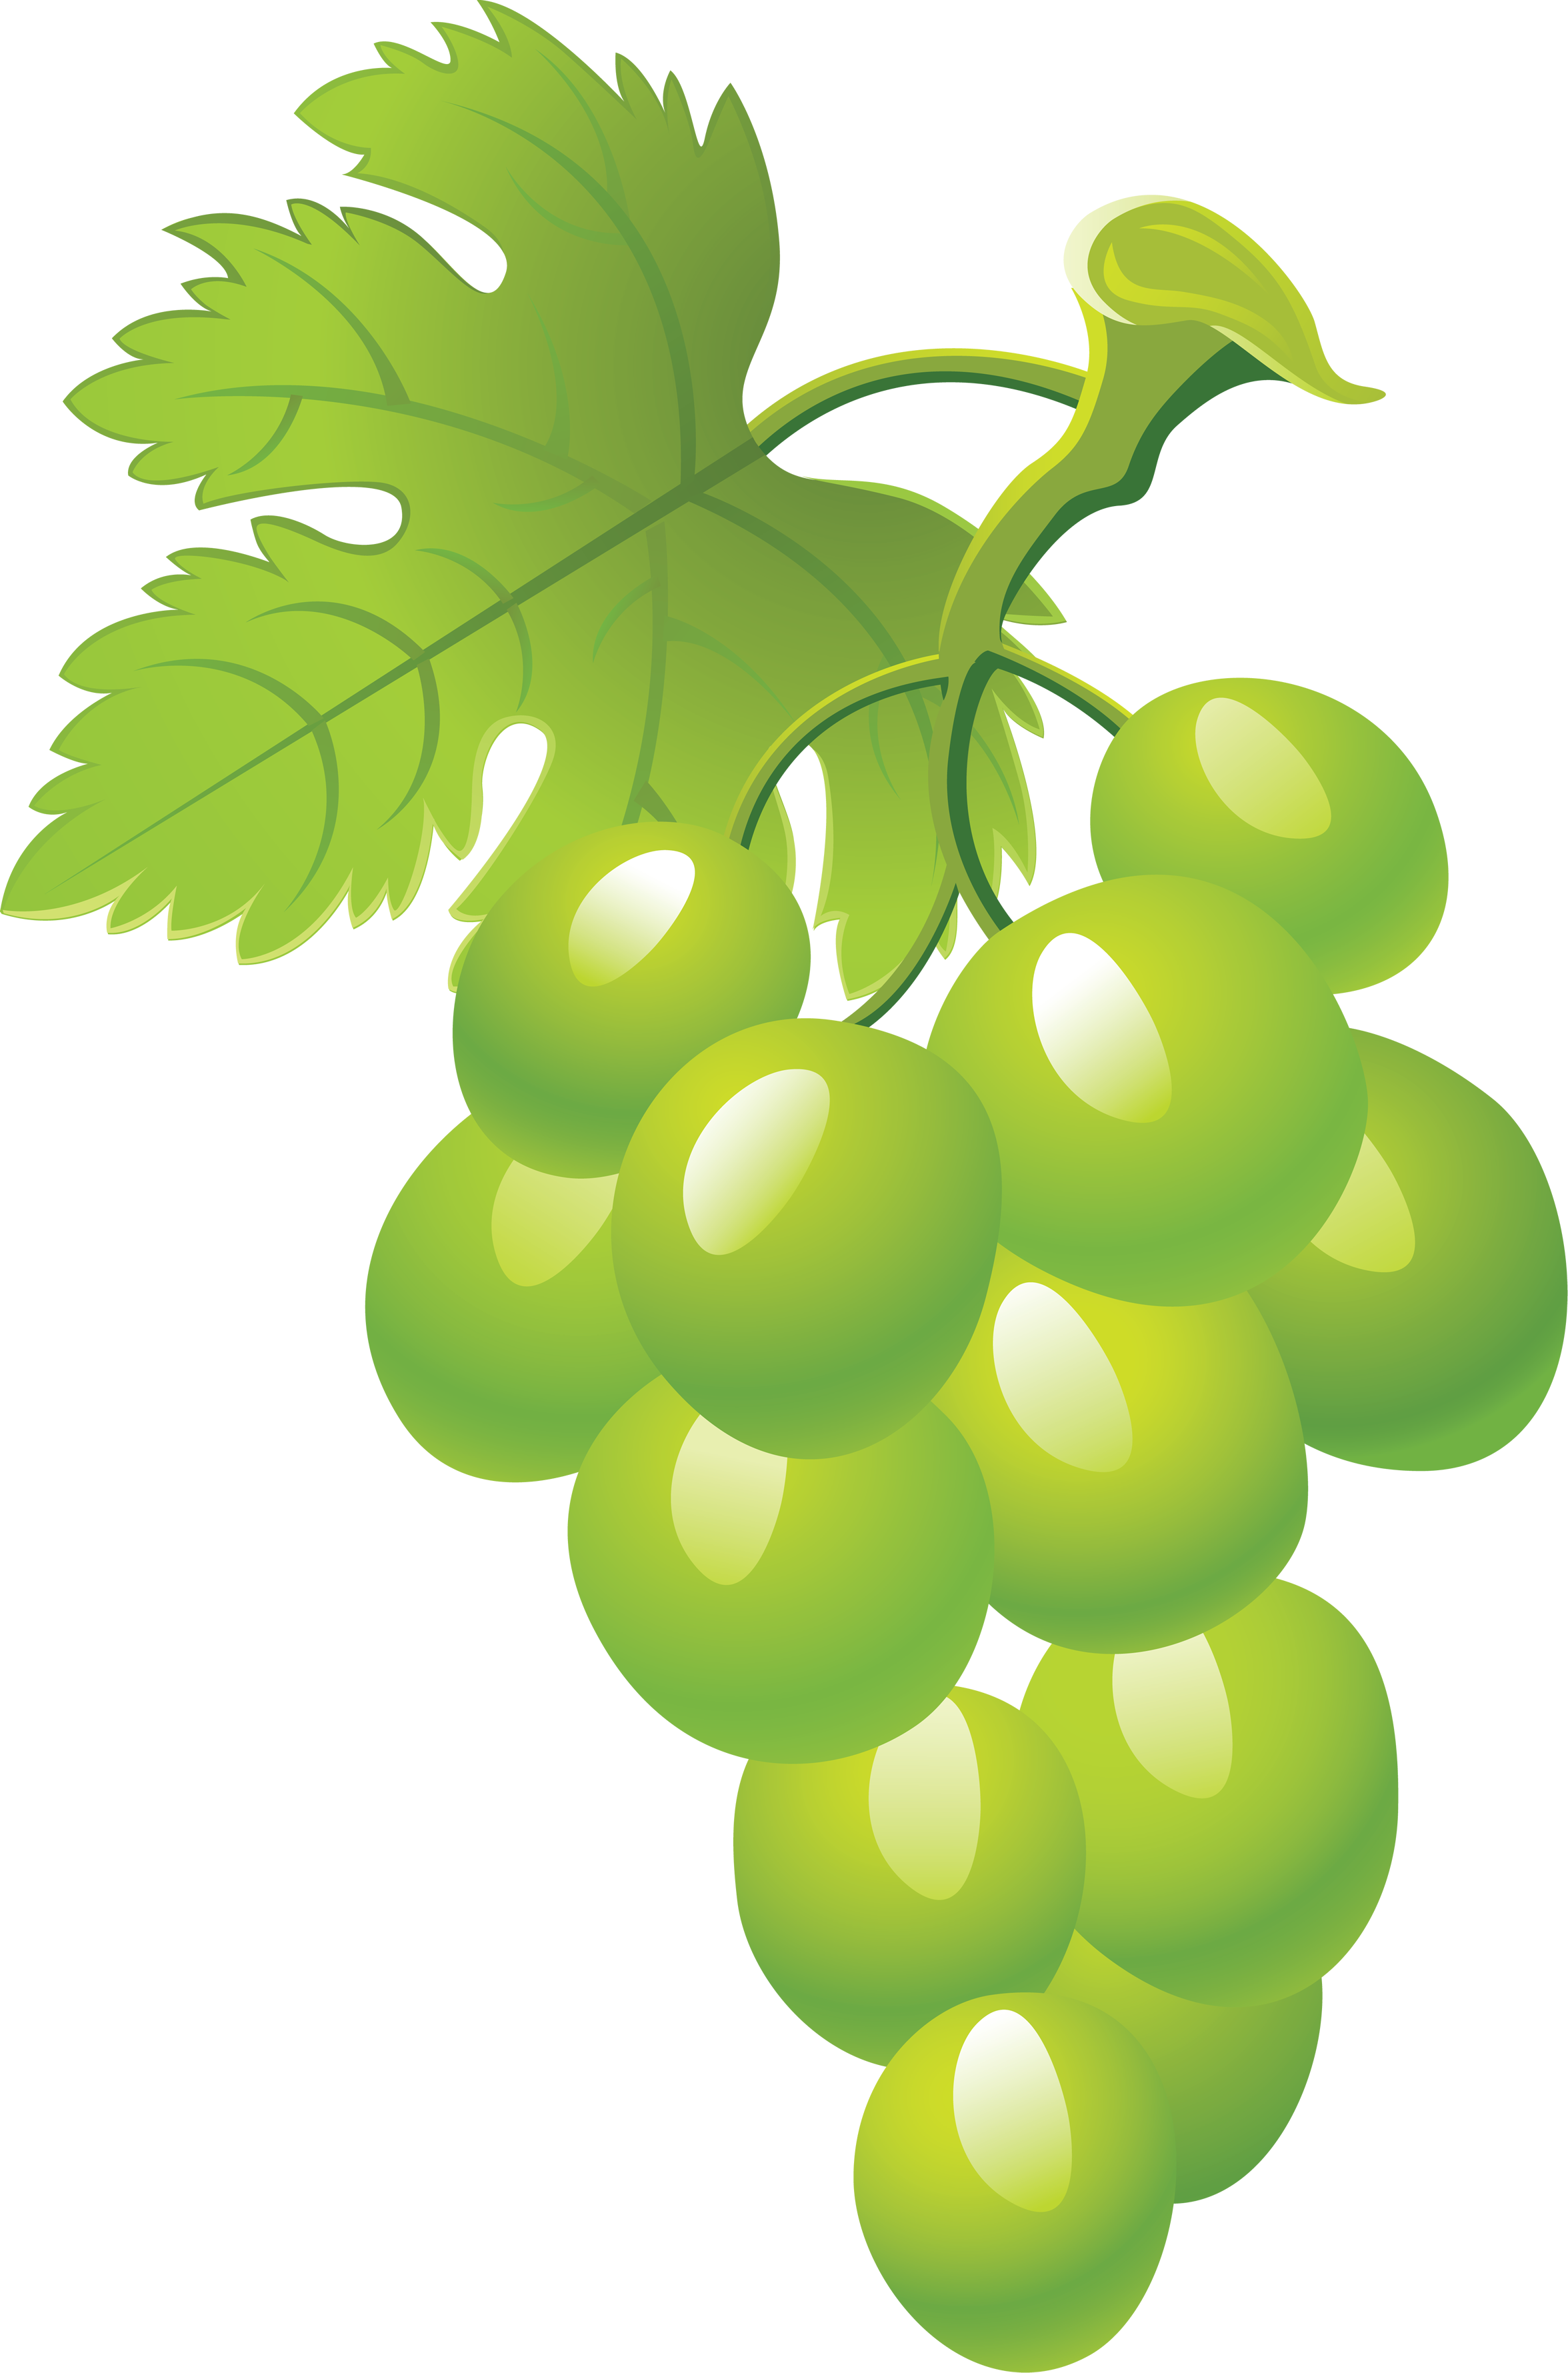 Grapes clipart high re, Grapes high re Transparent FREE for.